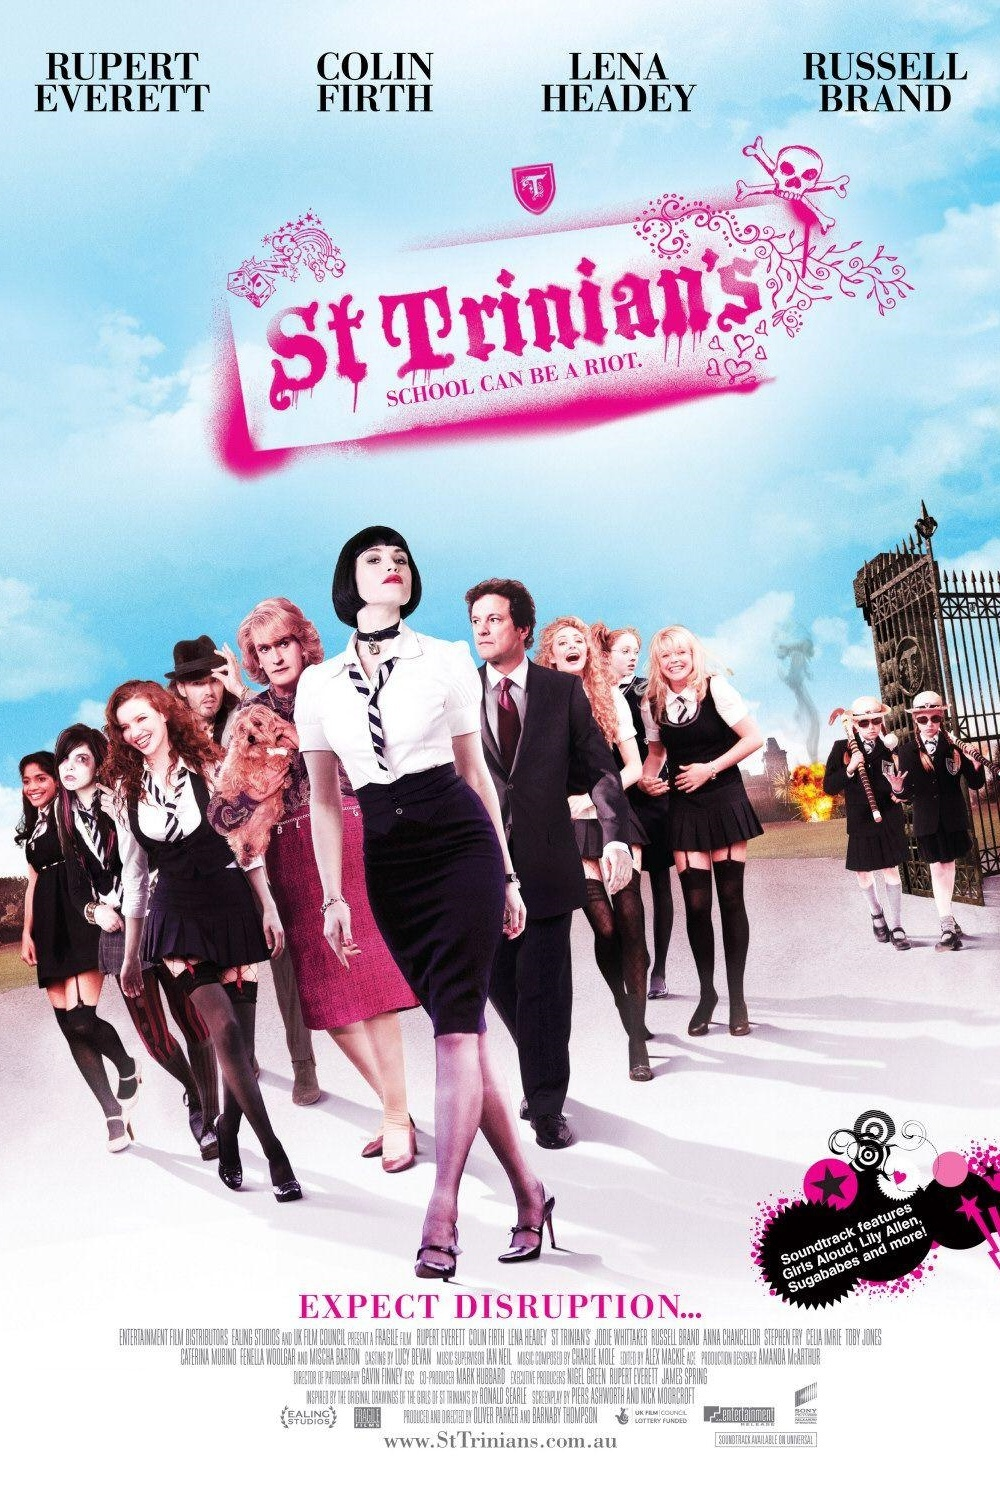 St Trinians (School can be a